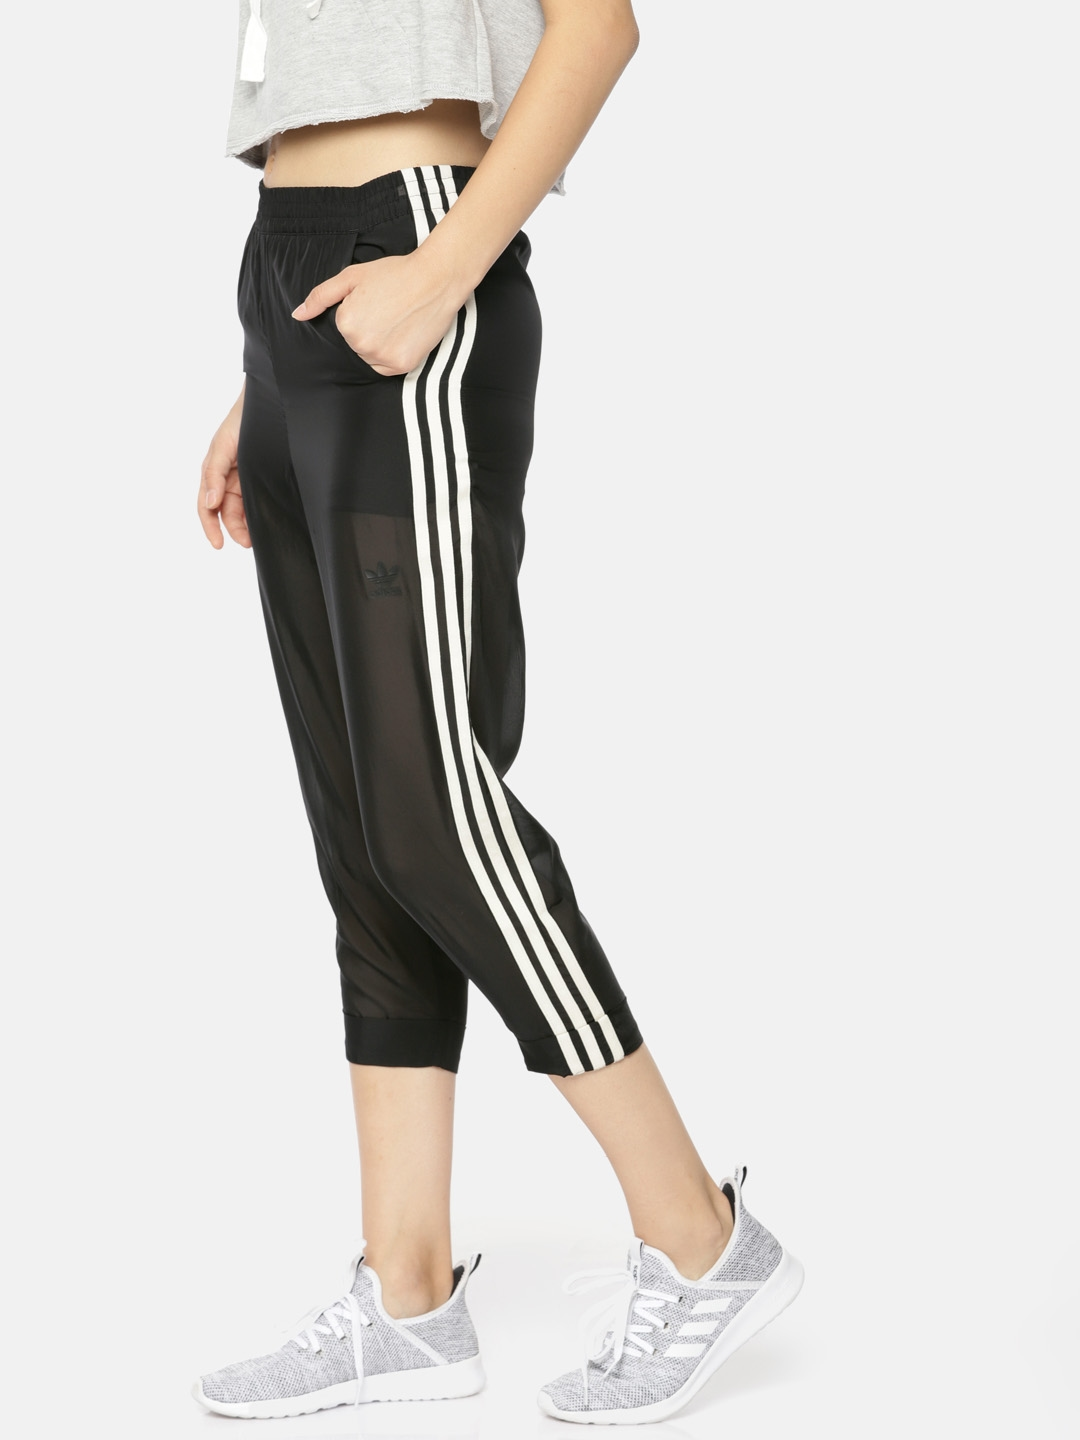 Dónde Continental Electricista  Buy ADIDAS Originals Women Black Regular Fit Solid Track Pants - Track  Pants for Women 8808955 | Myntra